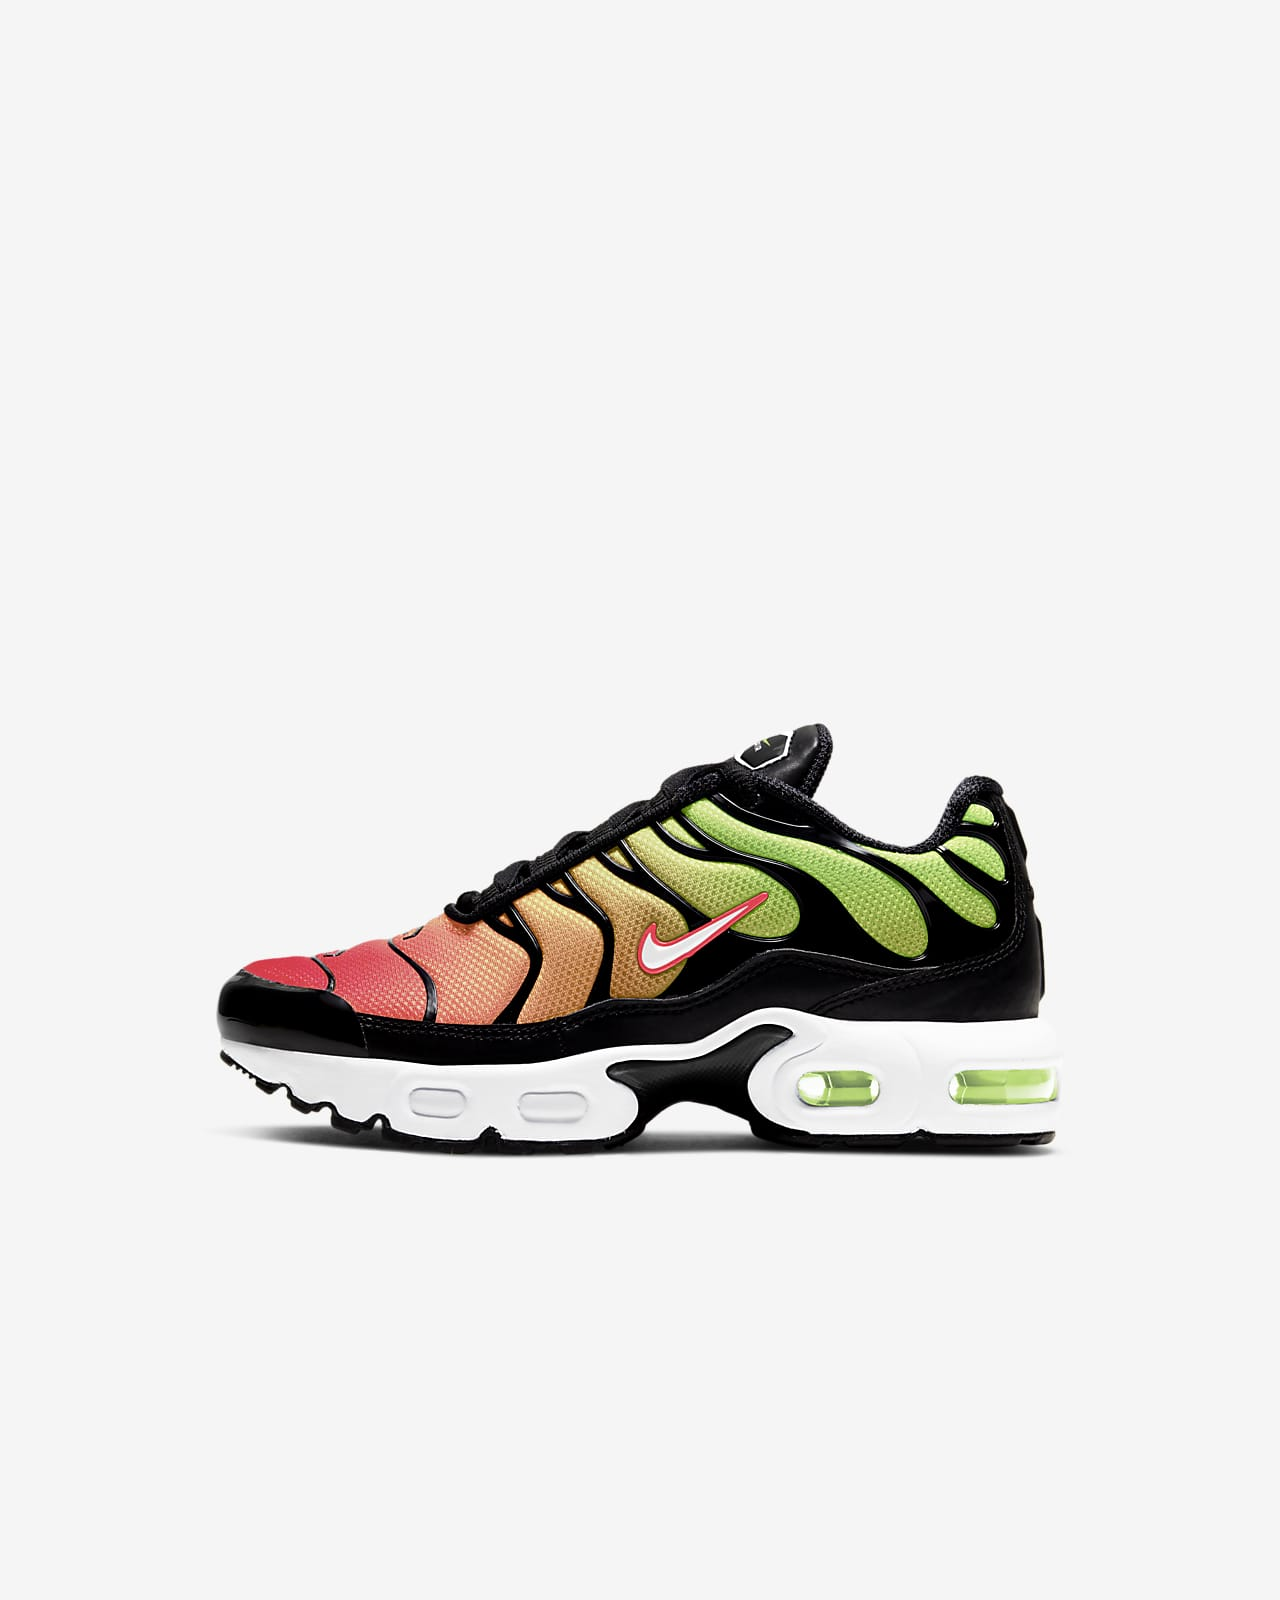 Nike Air Max Plus Kleuterschoen